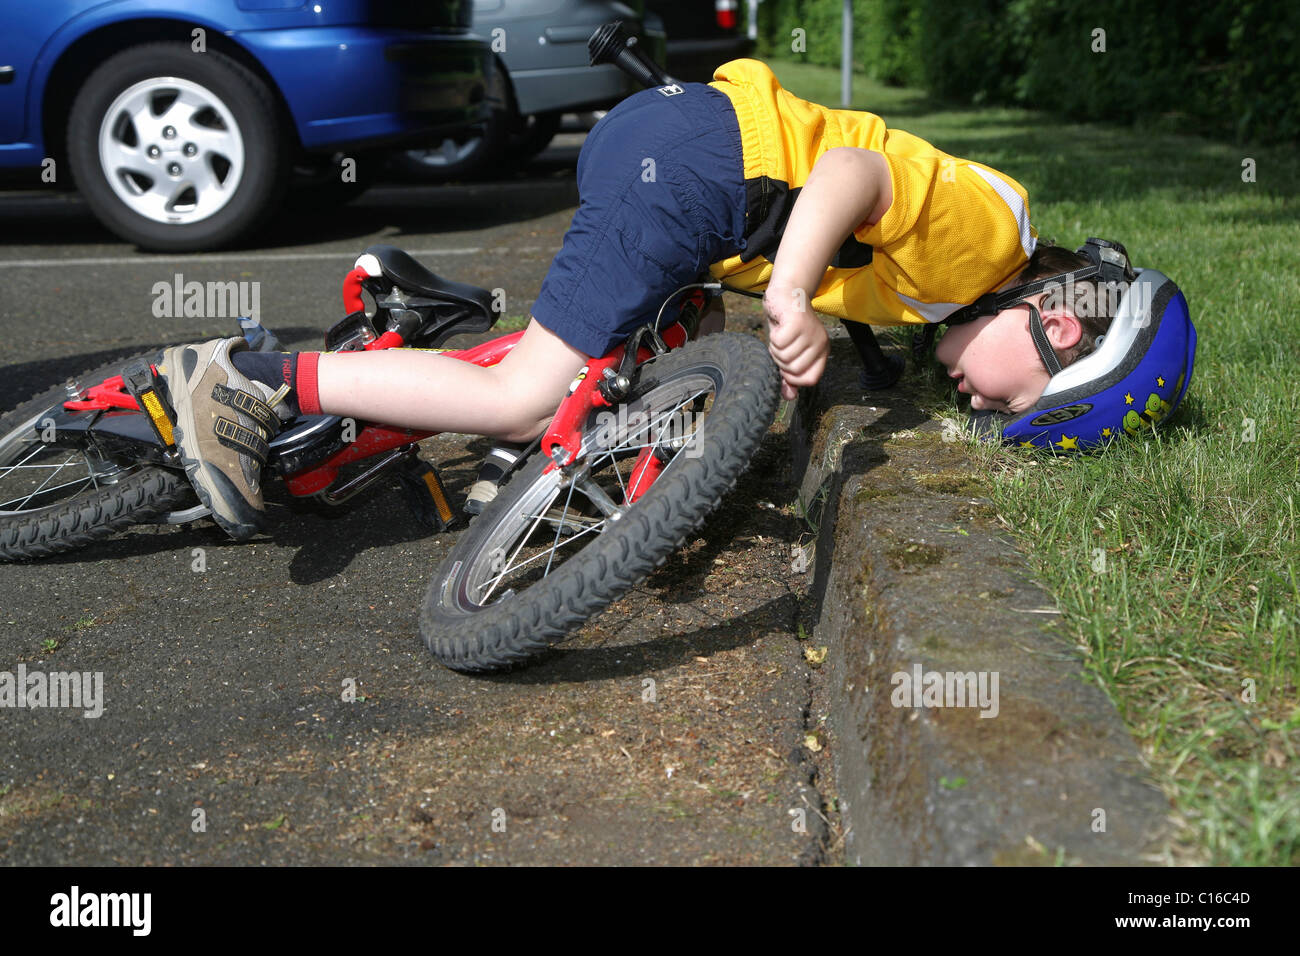 Five-year-old boy wearing a bicycle helmet falling off his ...